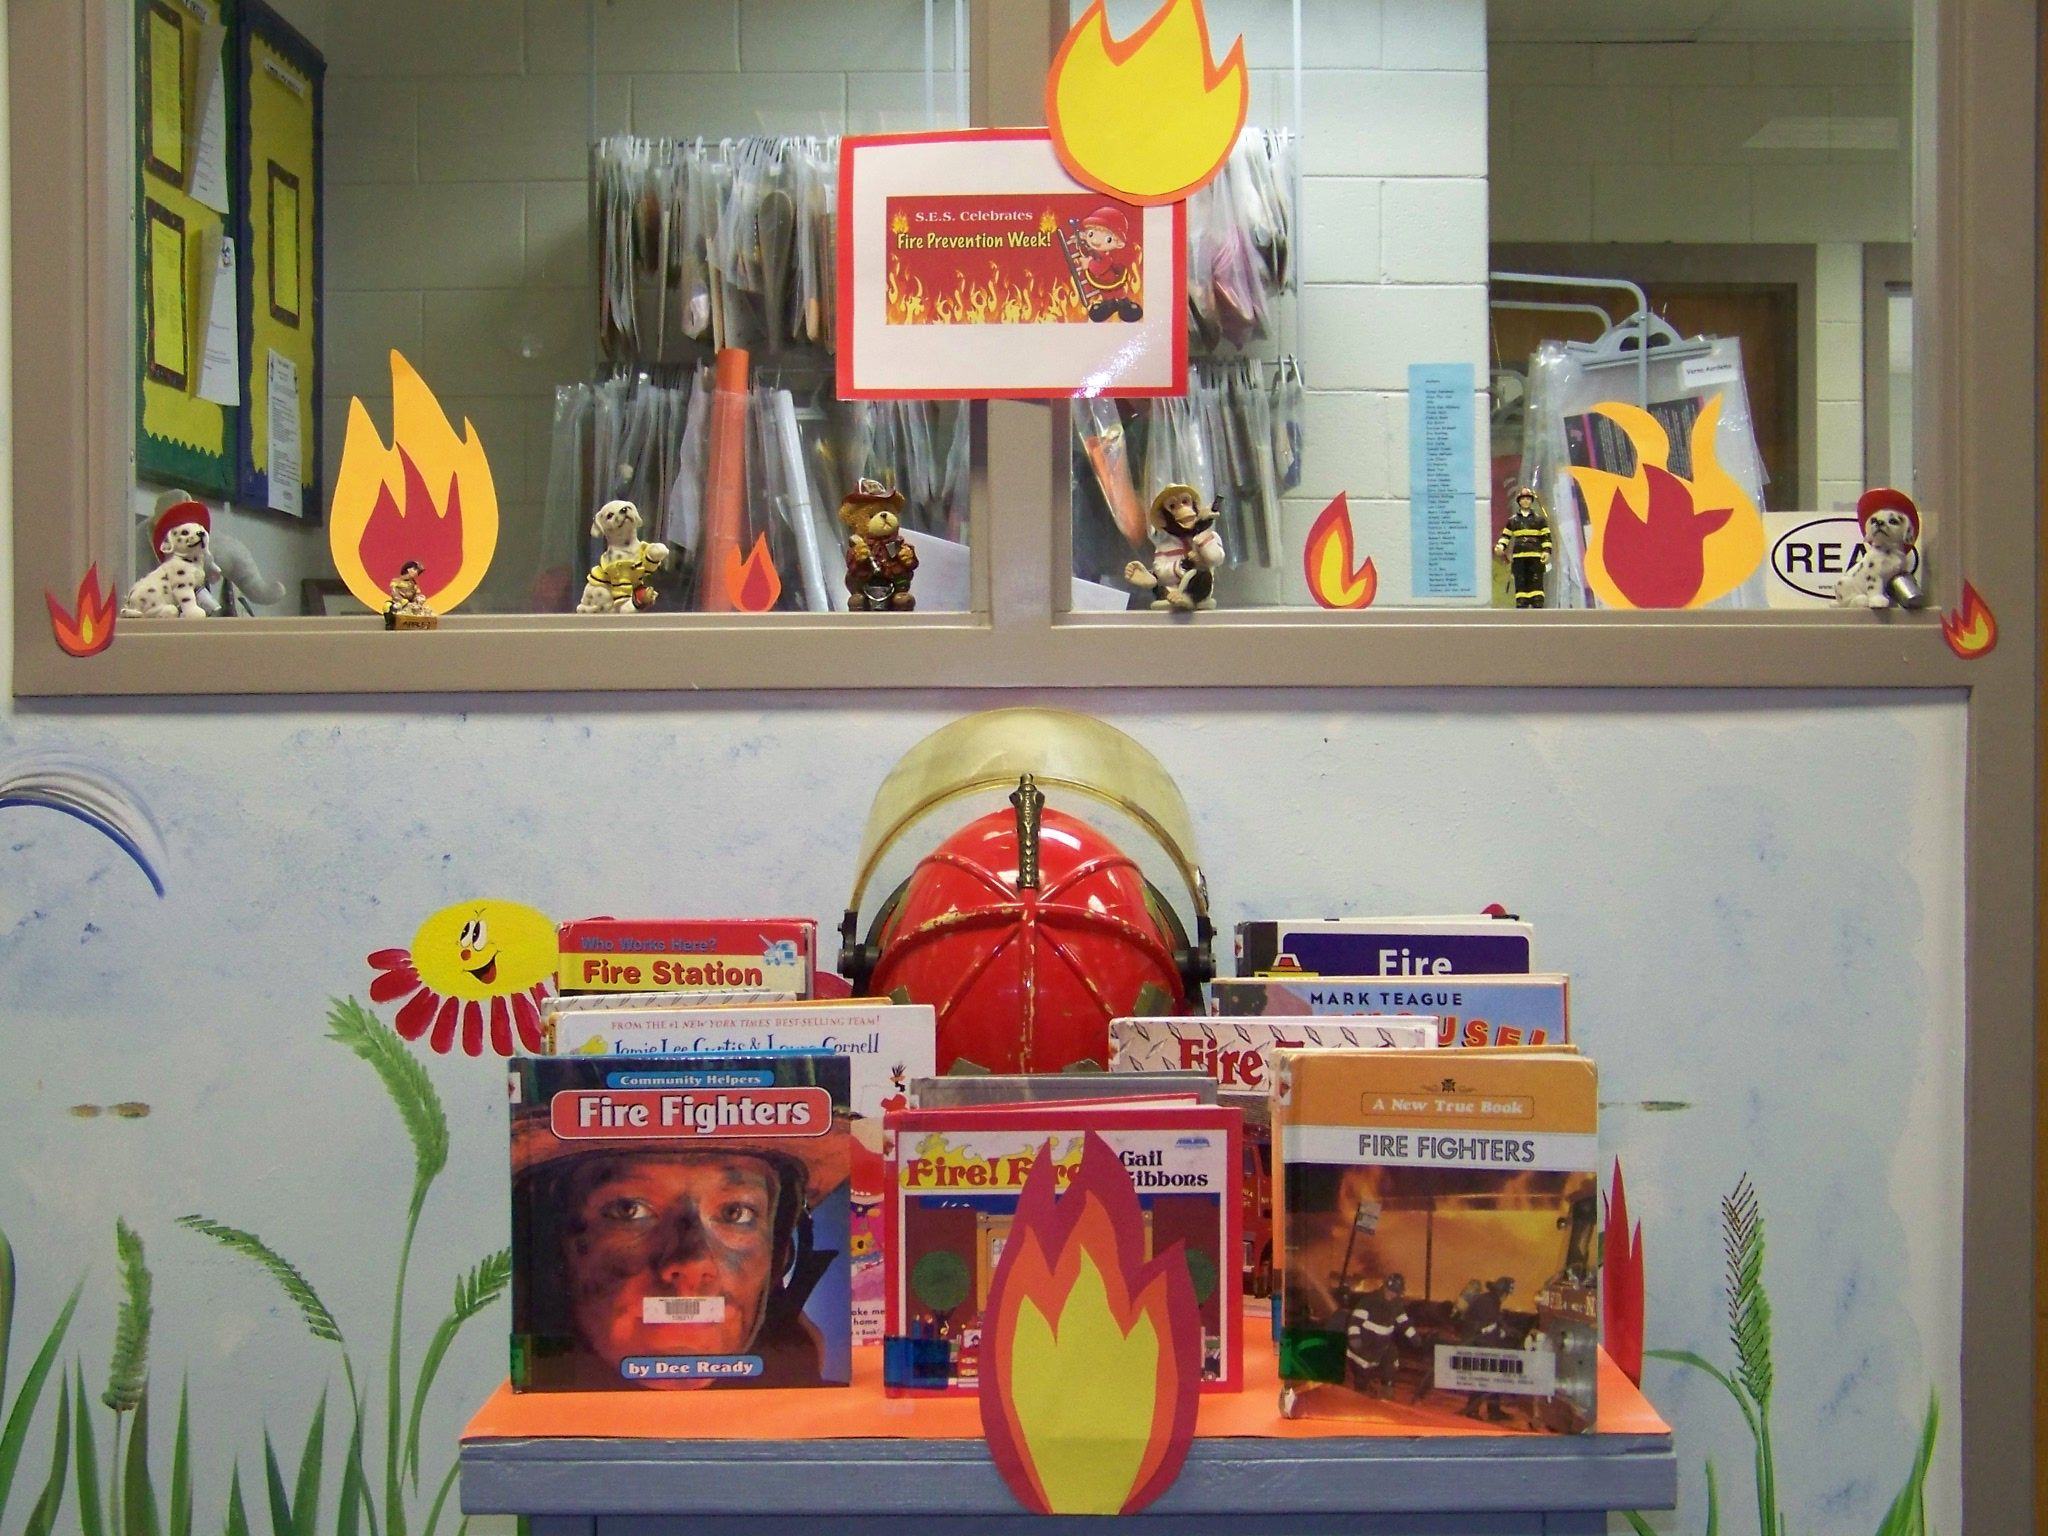 Fire Safety Week Library Display